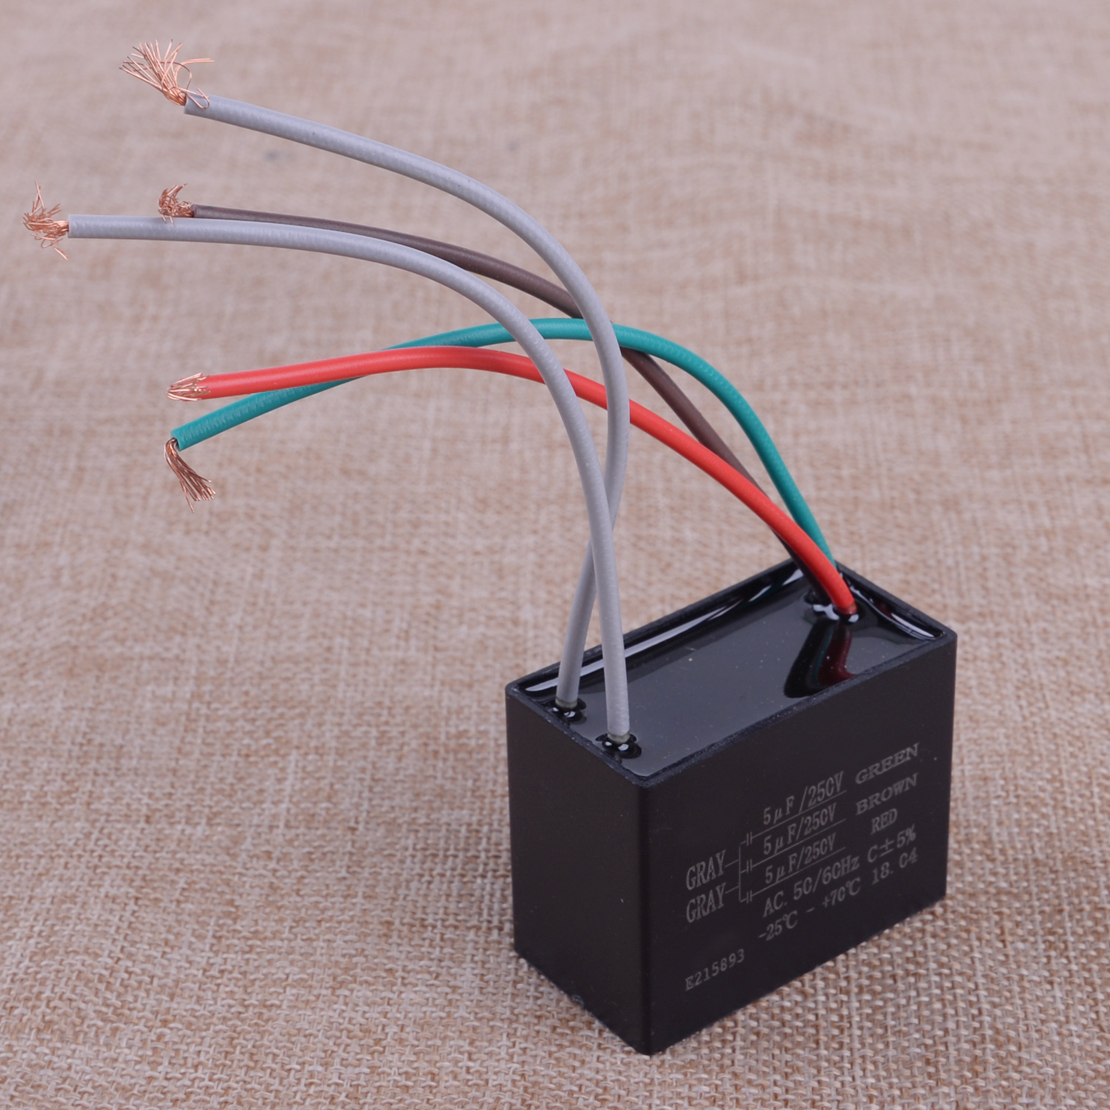 1pc Black Cbb61 Capacitor 25uf 35uf 4uf Capacity 5 Wires Type Fan Control Wiring Letaosk Plastic Ul Ceiling 5uf Wire 250v